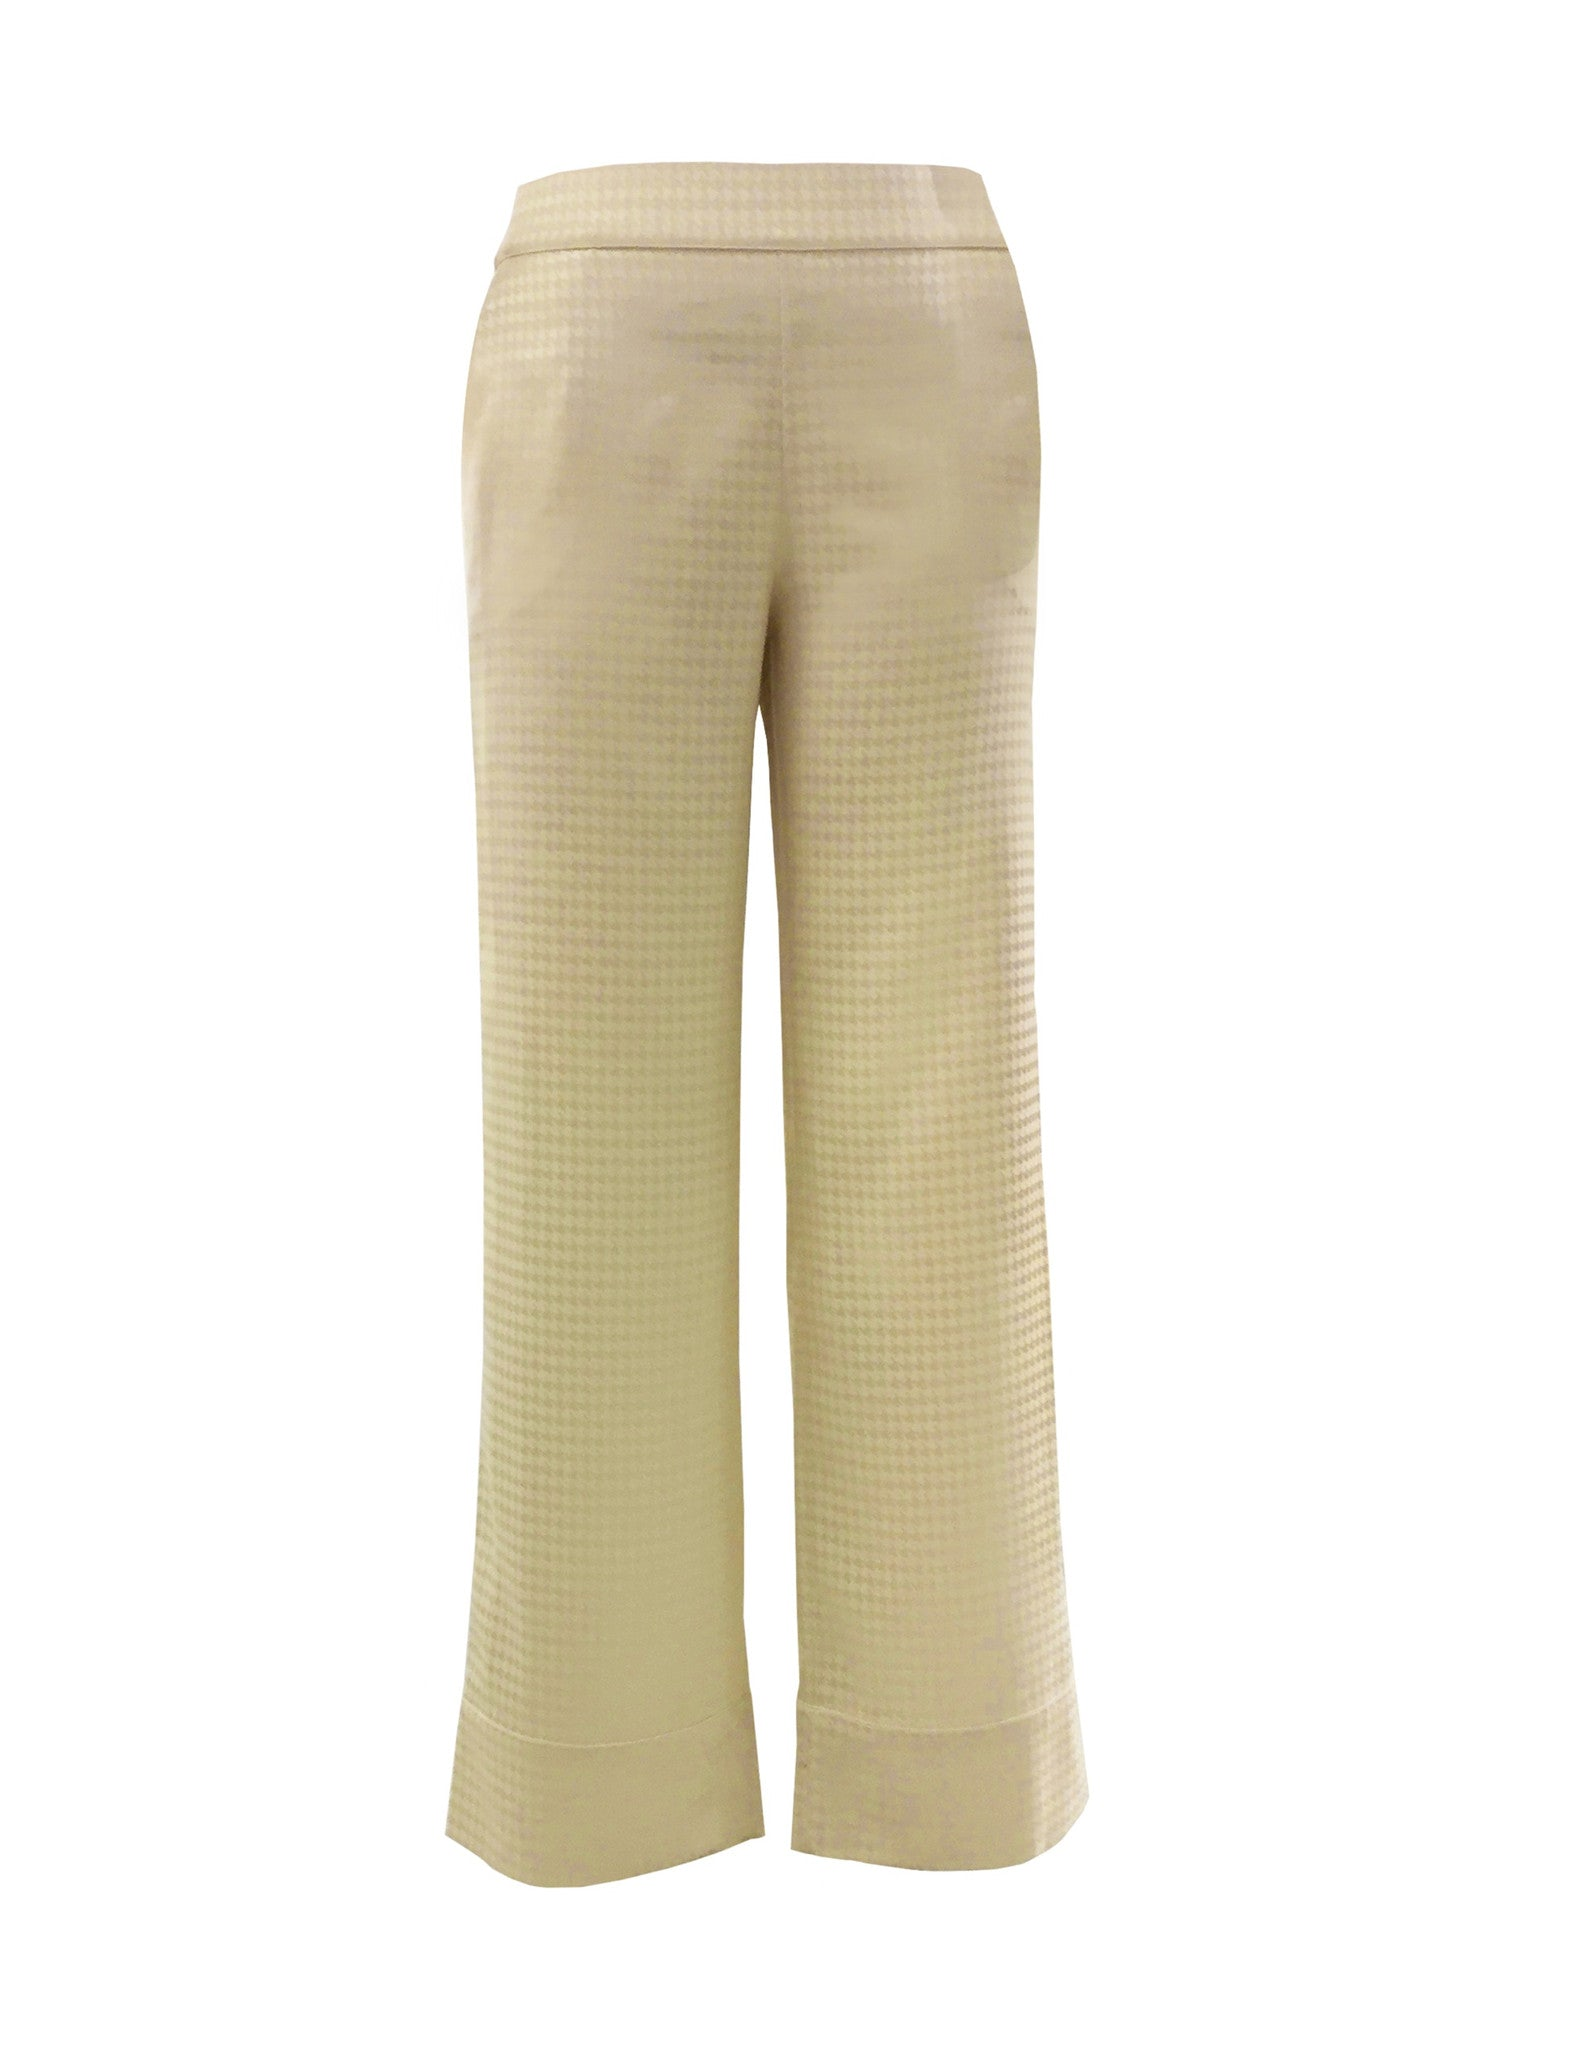 Beatrice Champagne PJ trousers